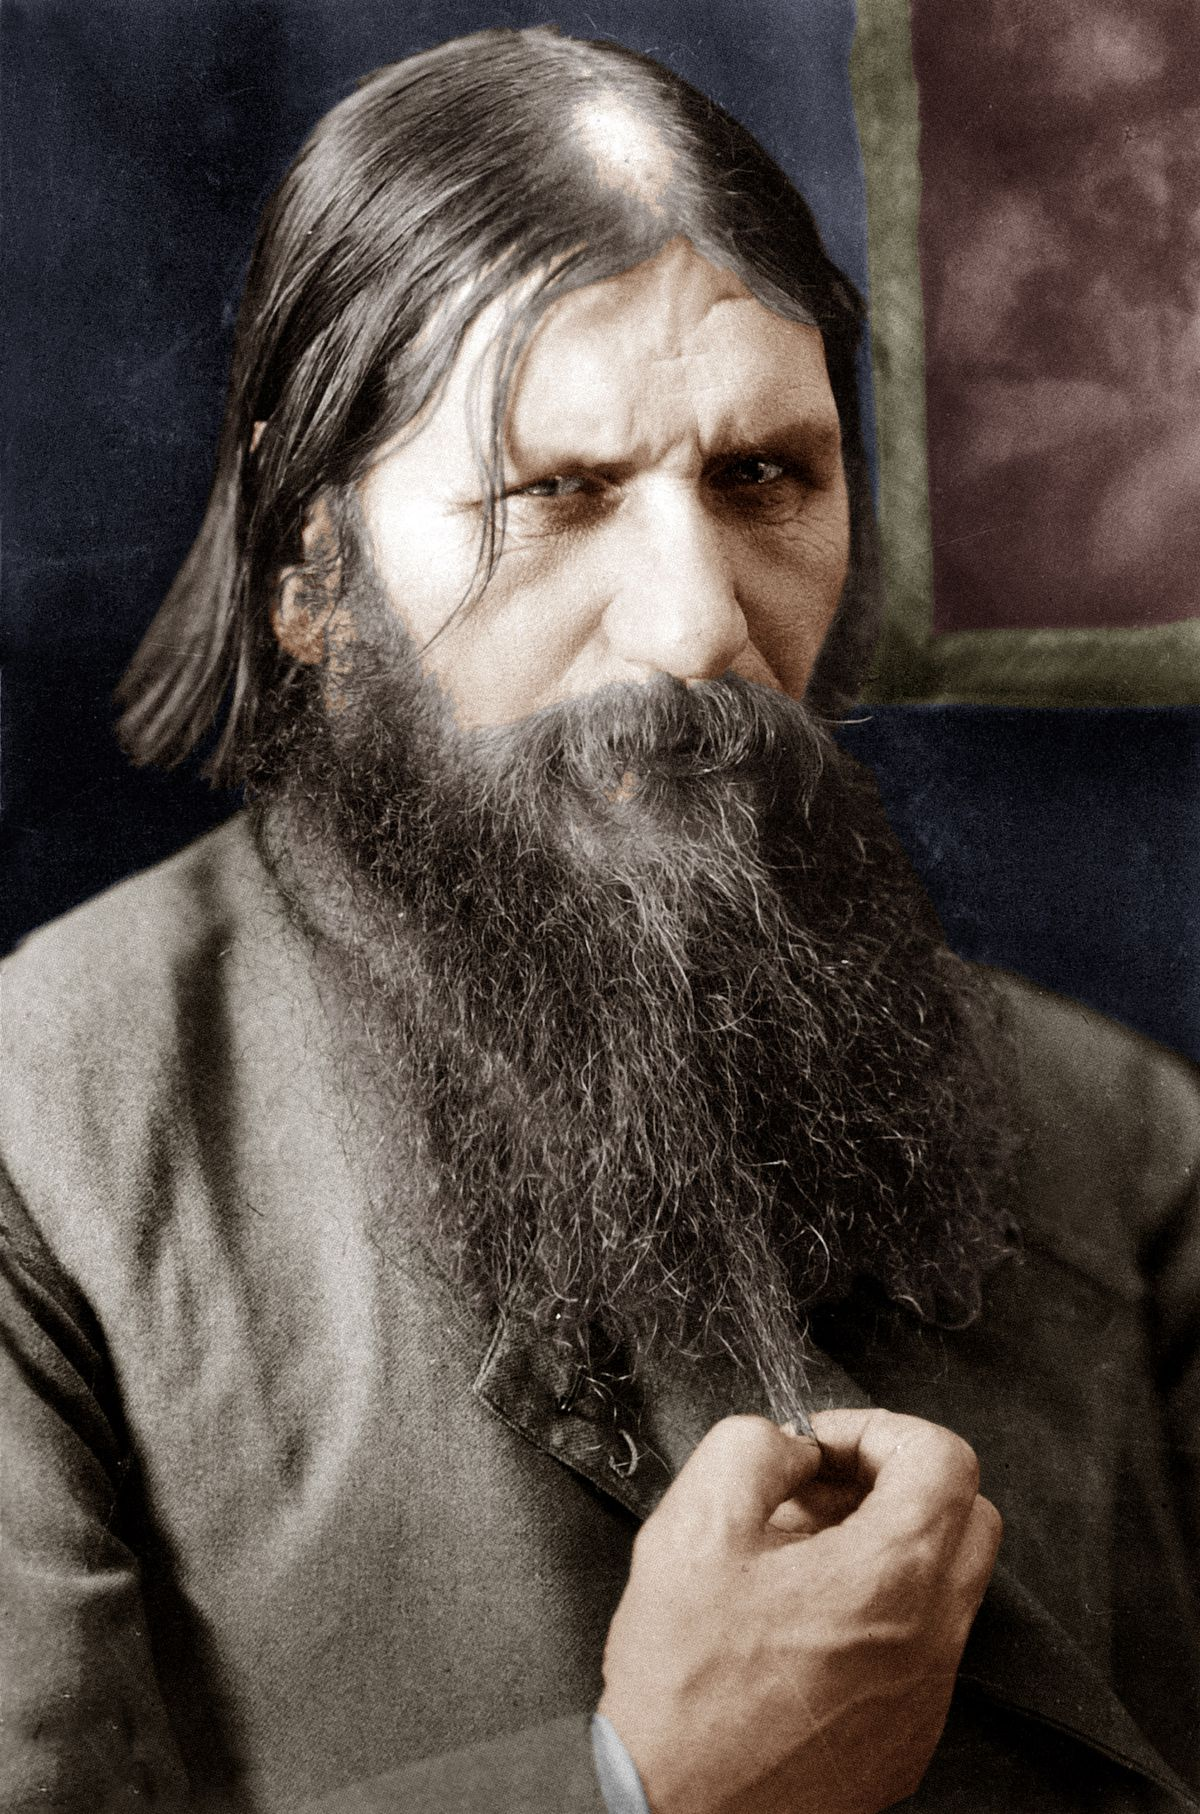 Rasputin (1871-1916) russian adventurer healer of czarevitch , protege of the czarina, he was murdered by prince Ioussoupov here in 1908 colorized document